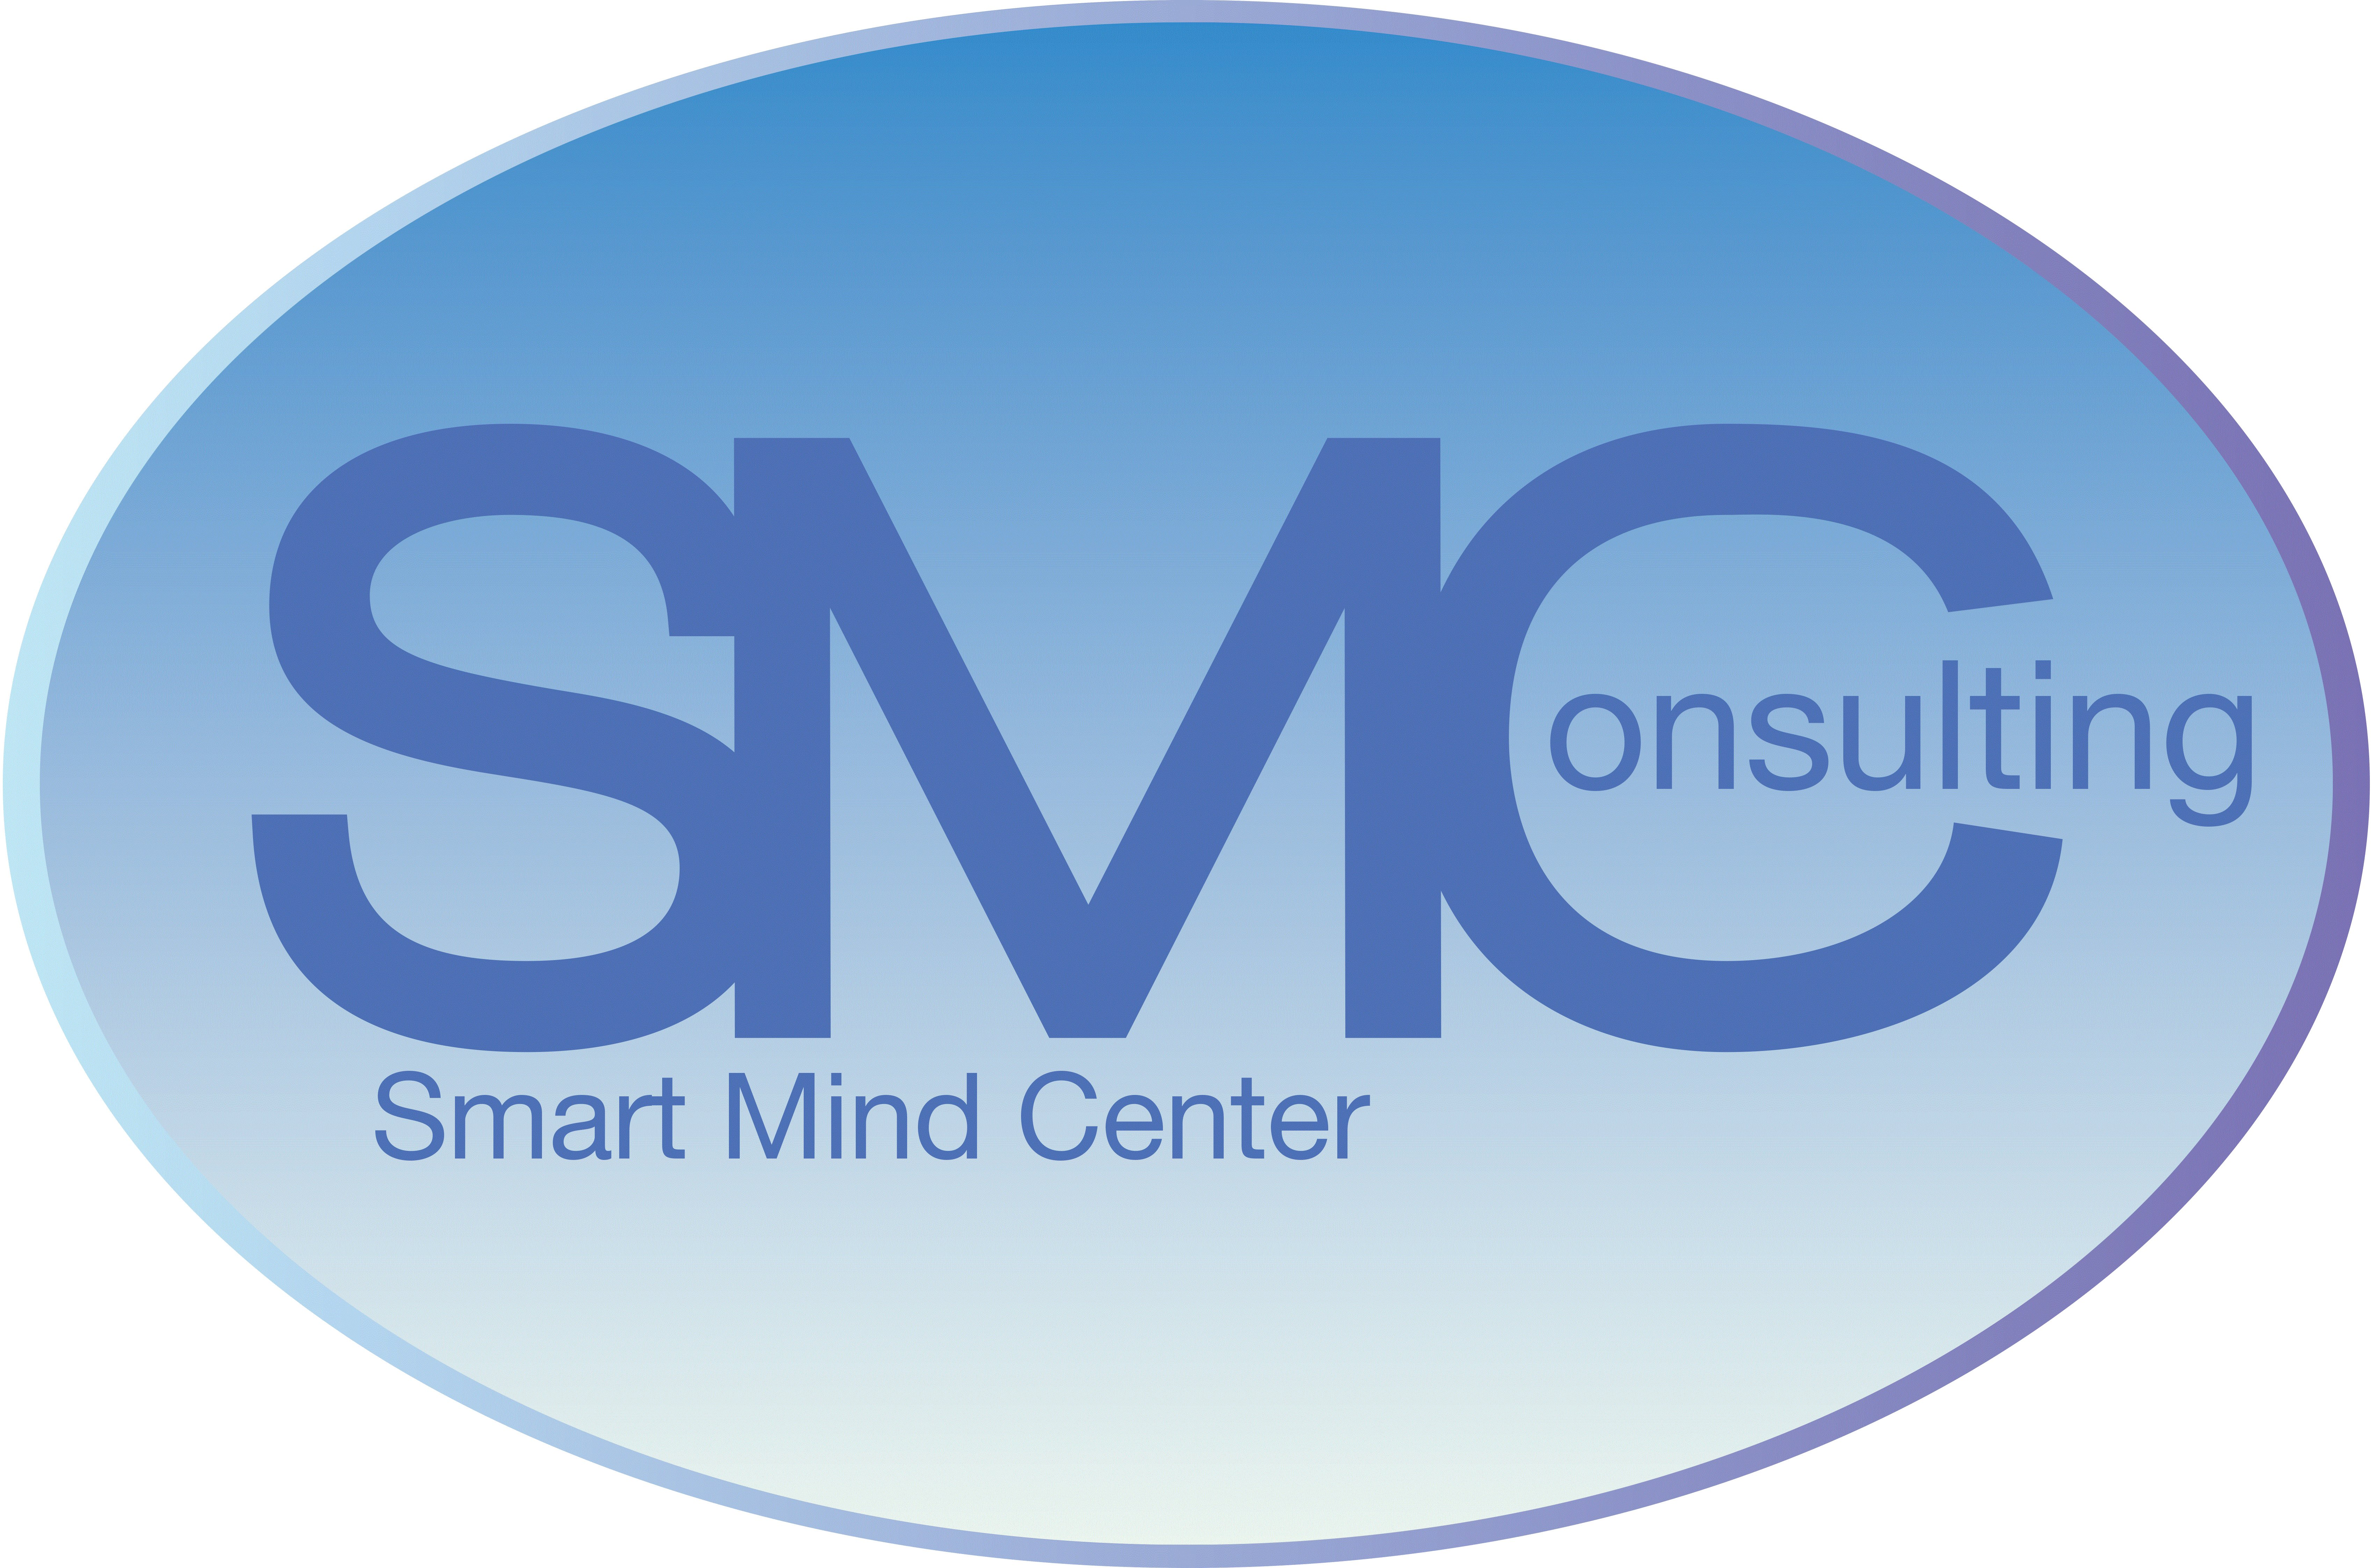 Smart Mind Center Consulting